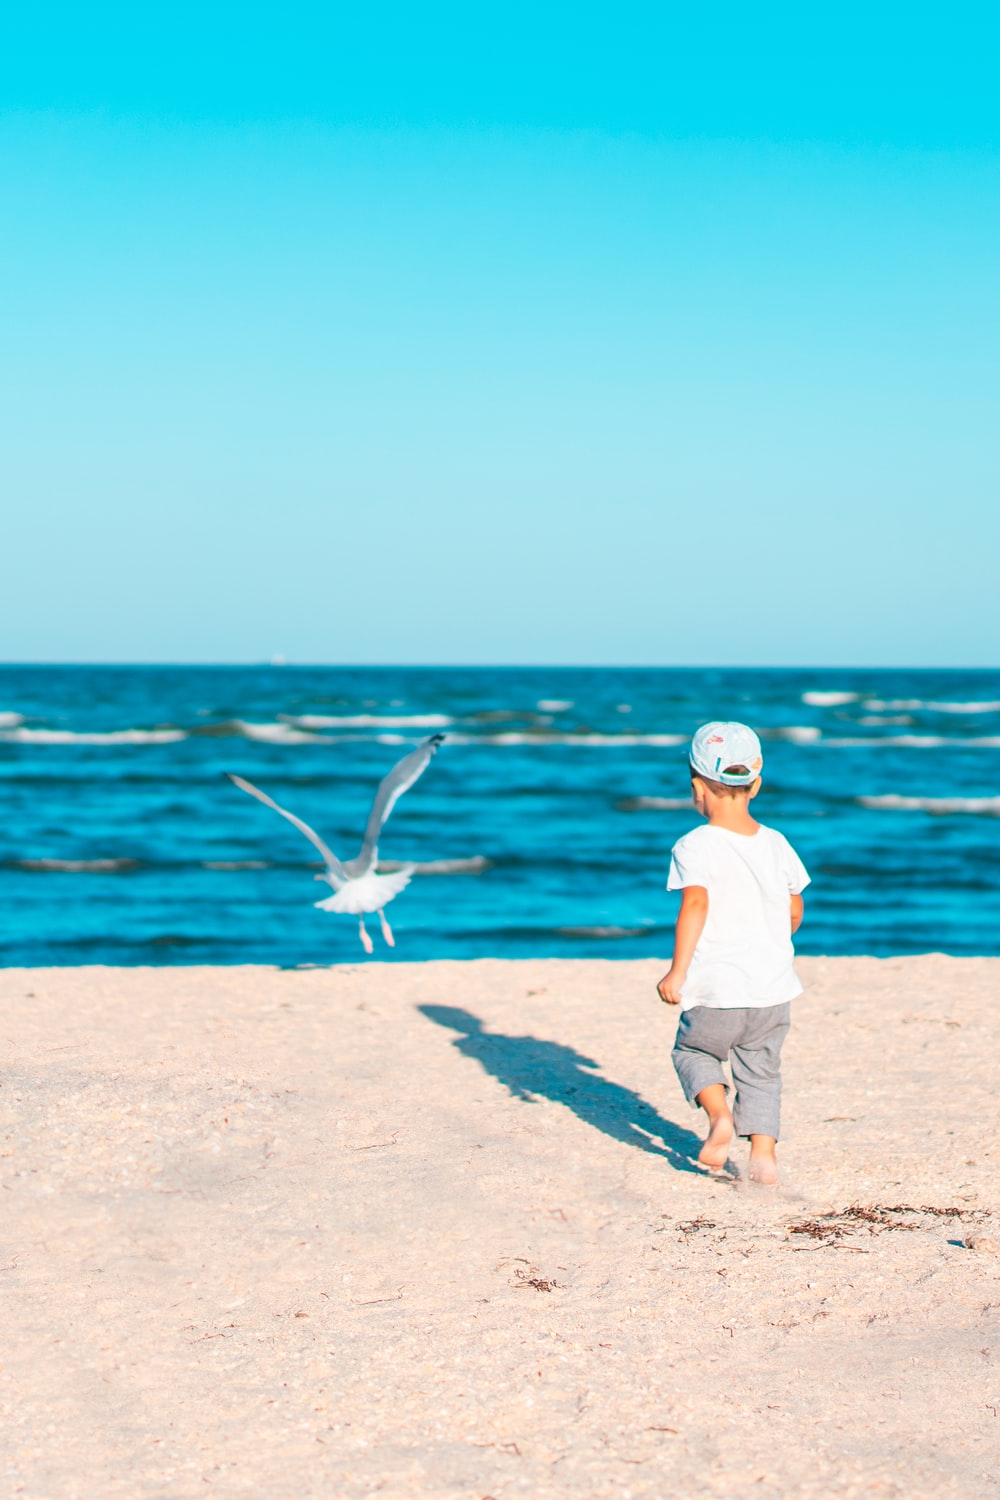 boy in white t-shirt and brown shorts standing on brown sand near body of water